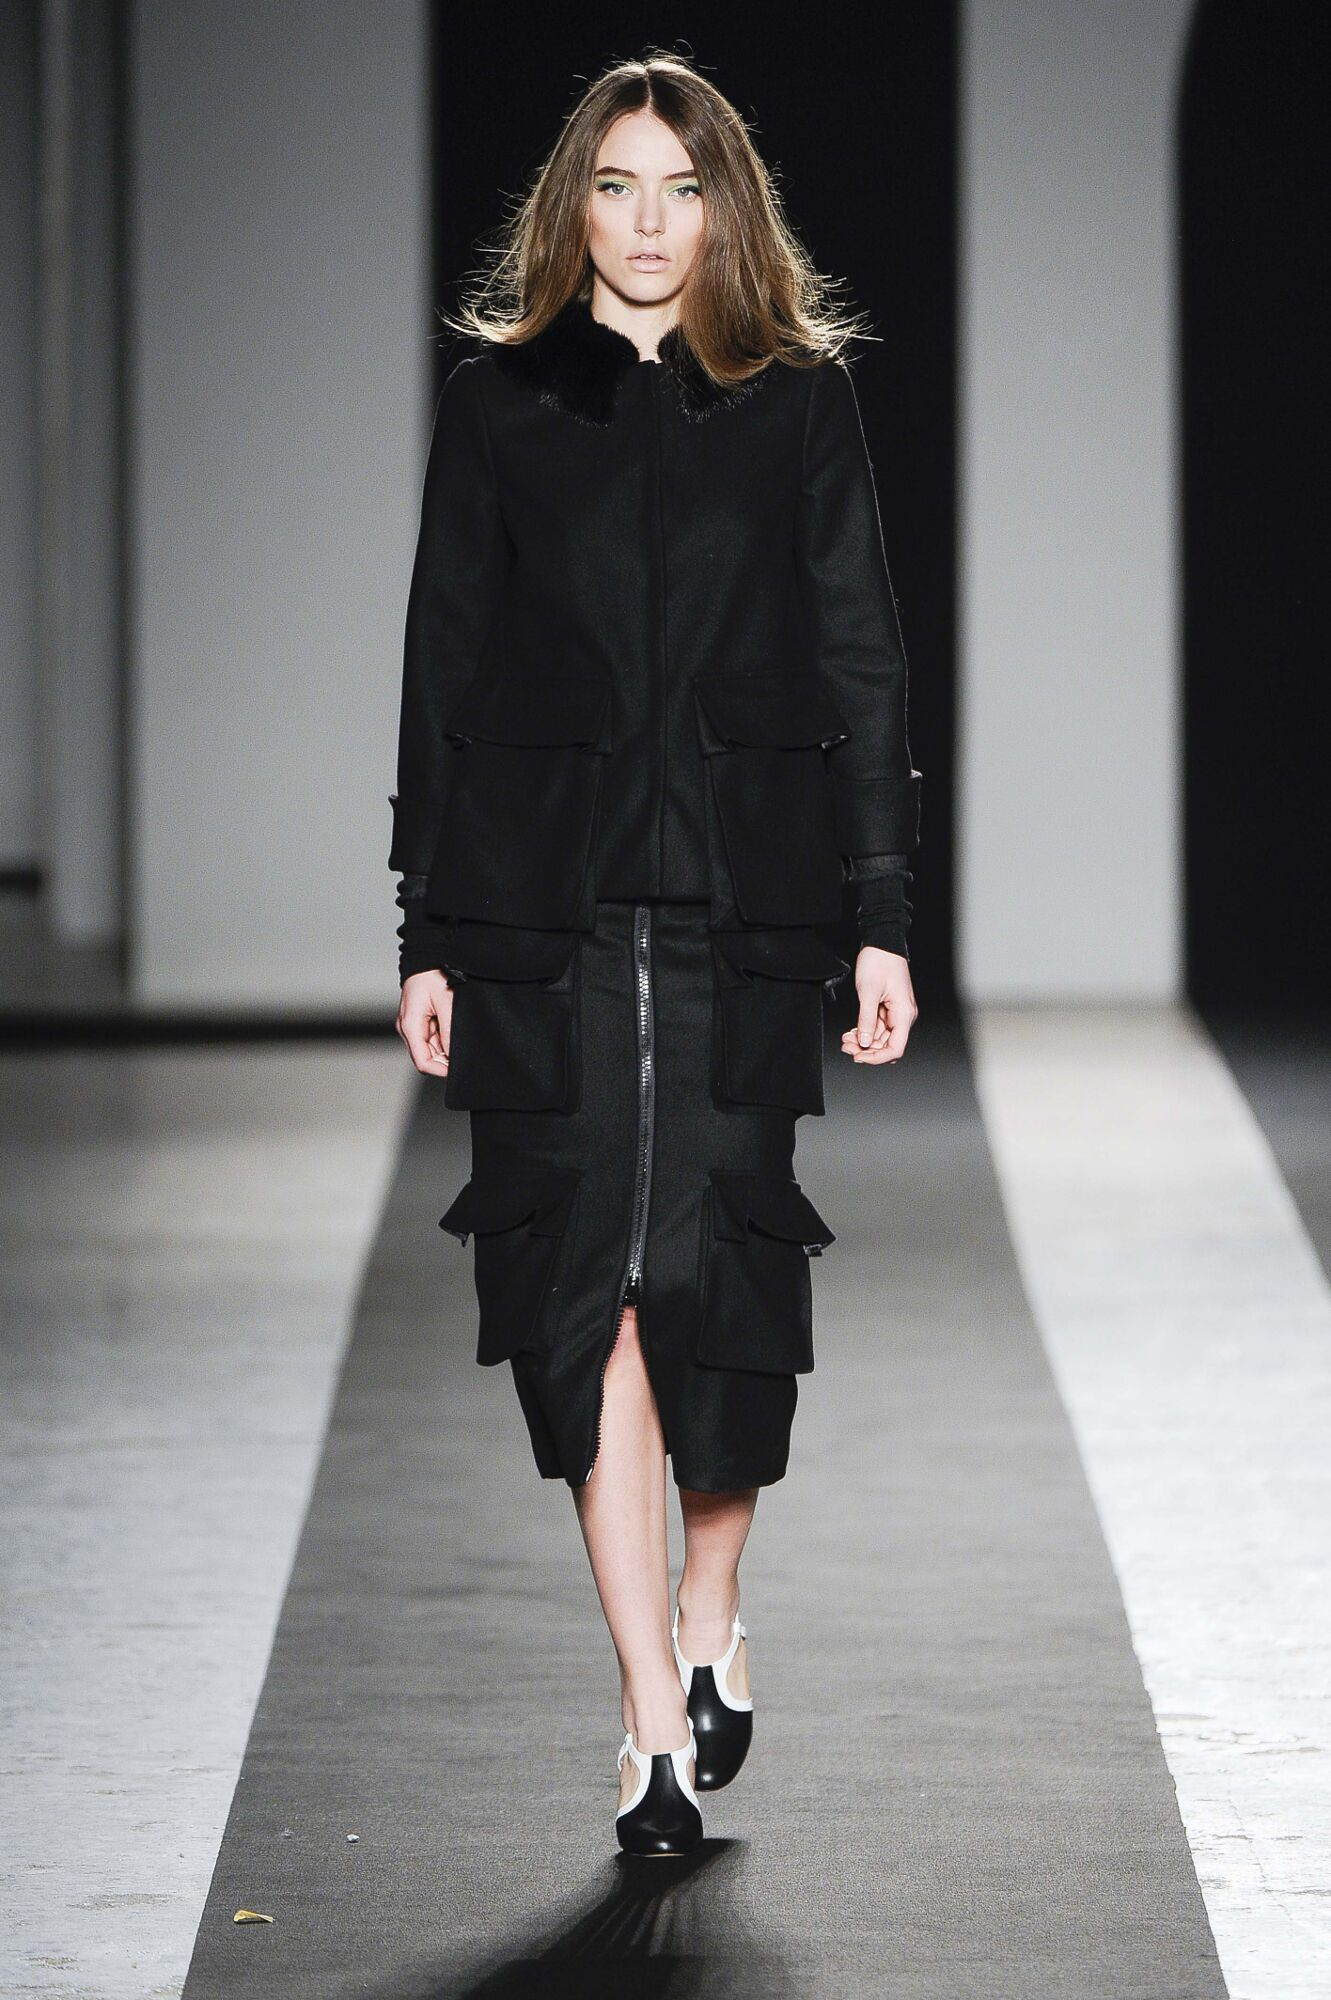 Fall Winter 2014 15 Fashion Women's Collection Andrea Incontri